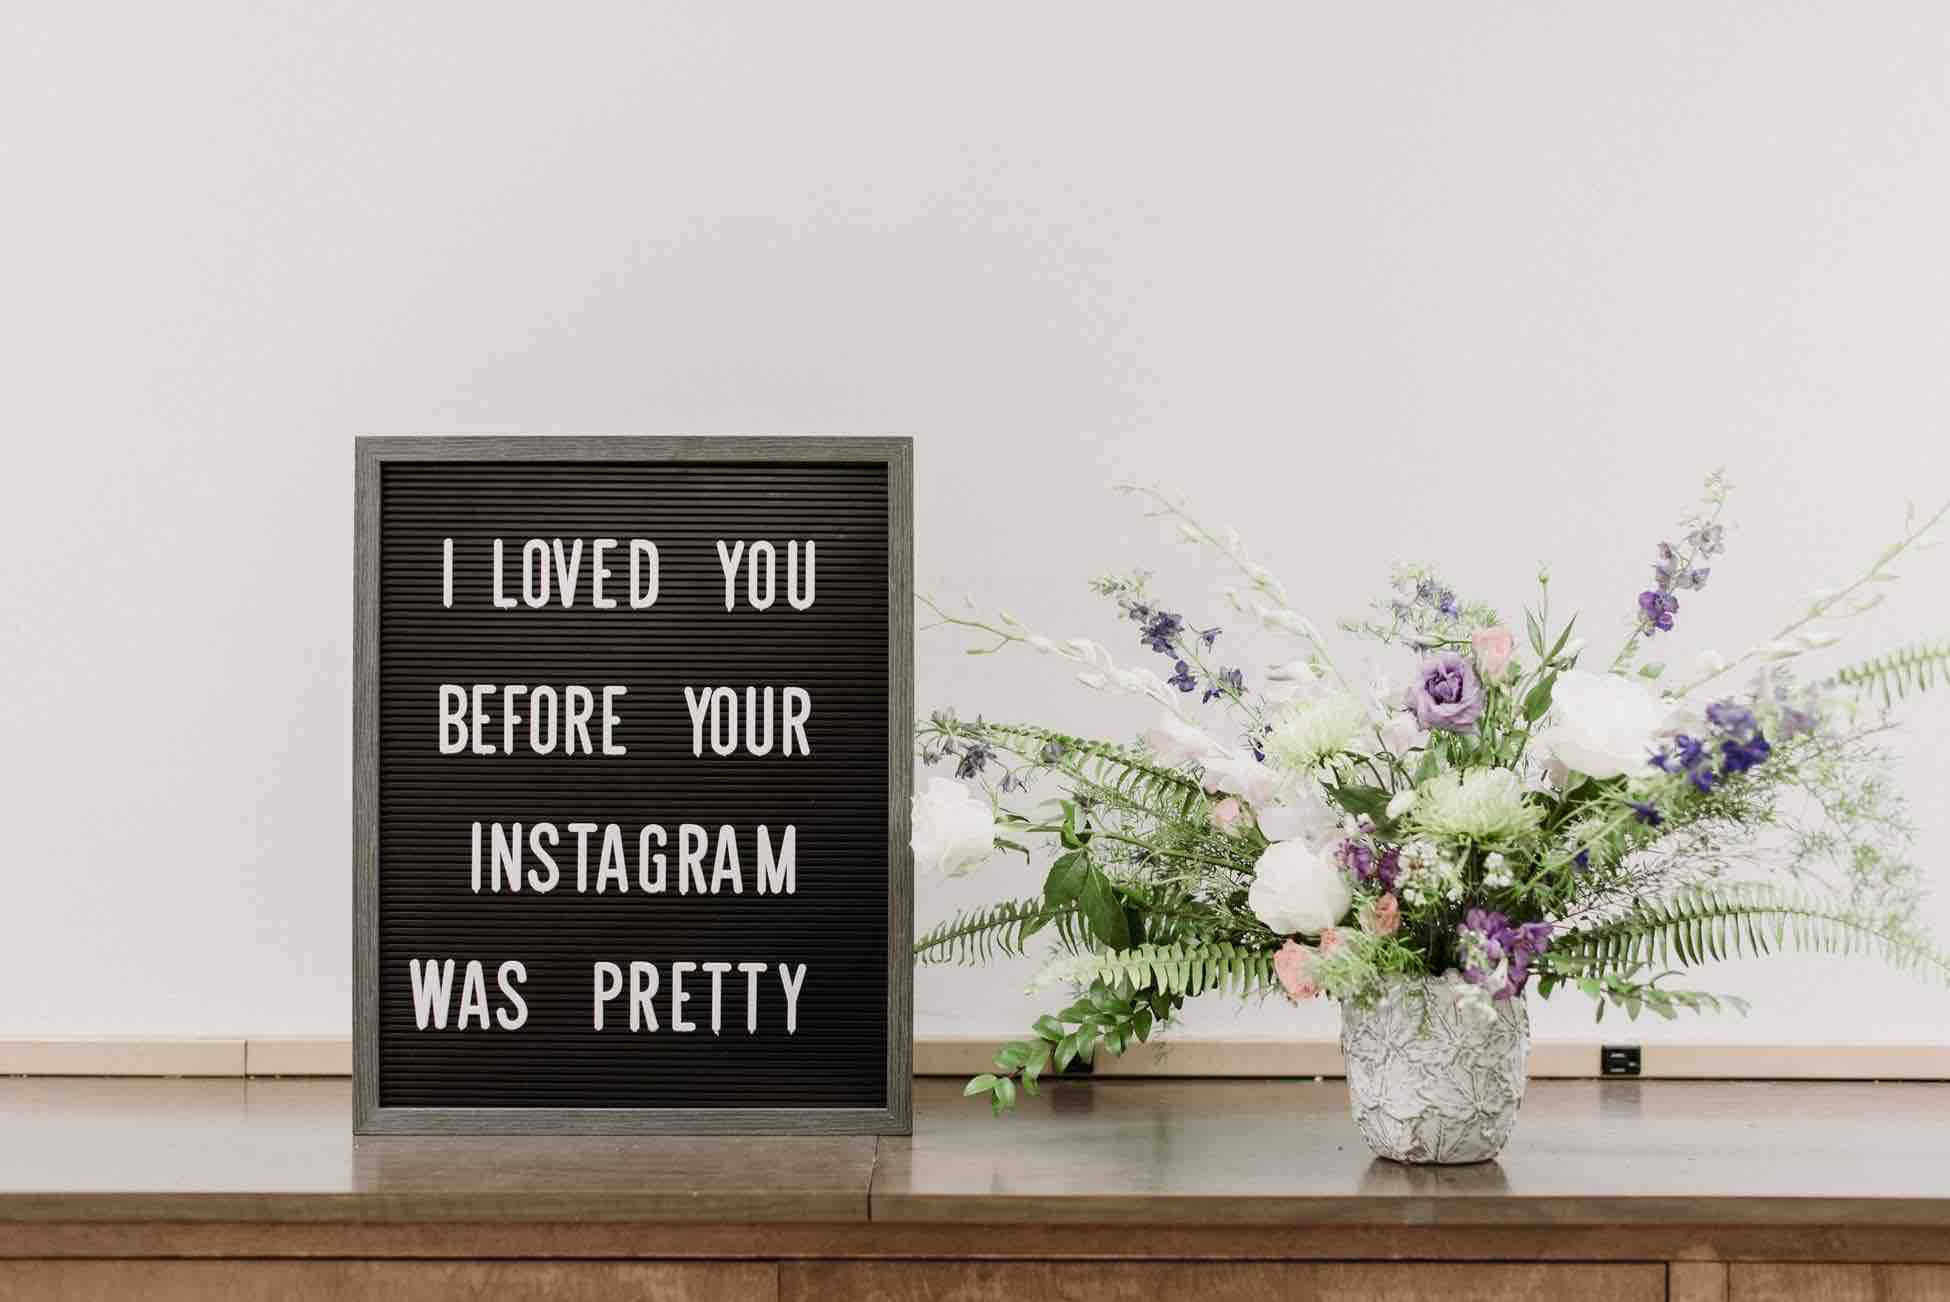 I loved you before your Instagram was pretty.